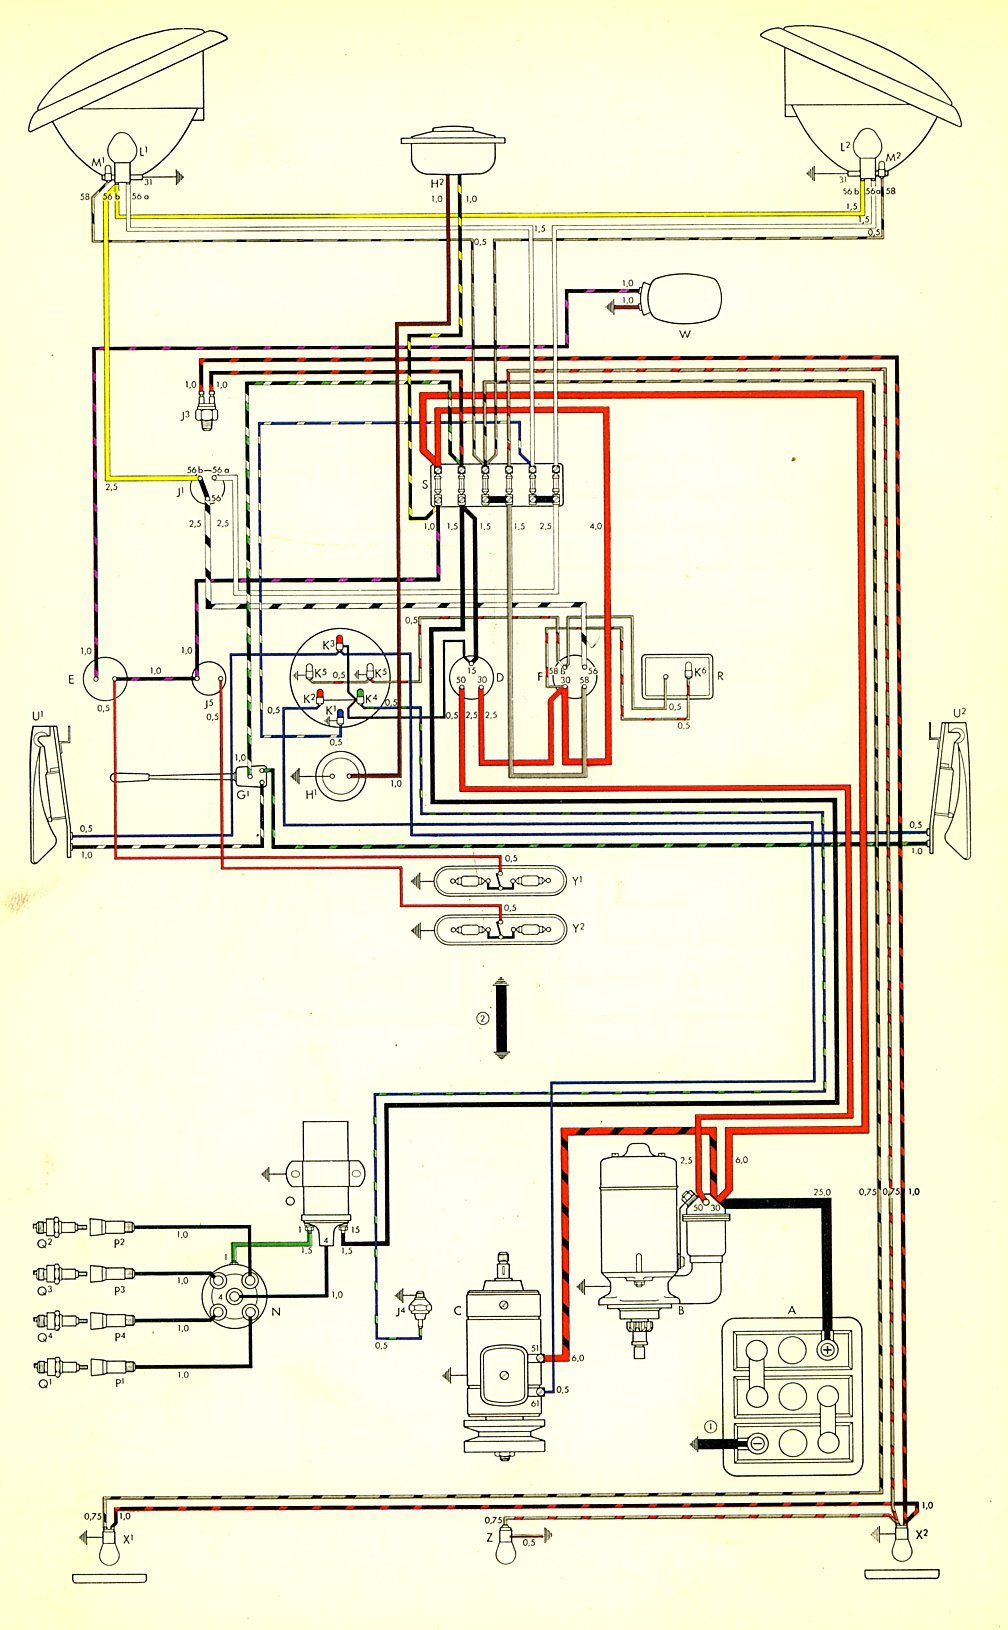 hight resolution of thesamba com type 2 wiring diagrams rh thesamba com 1968 volkswagen beetle wiring diagram 67 vw